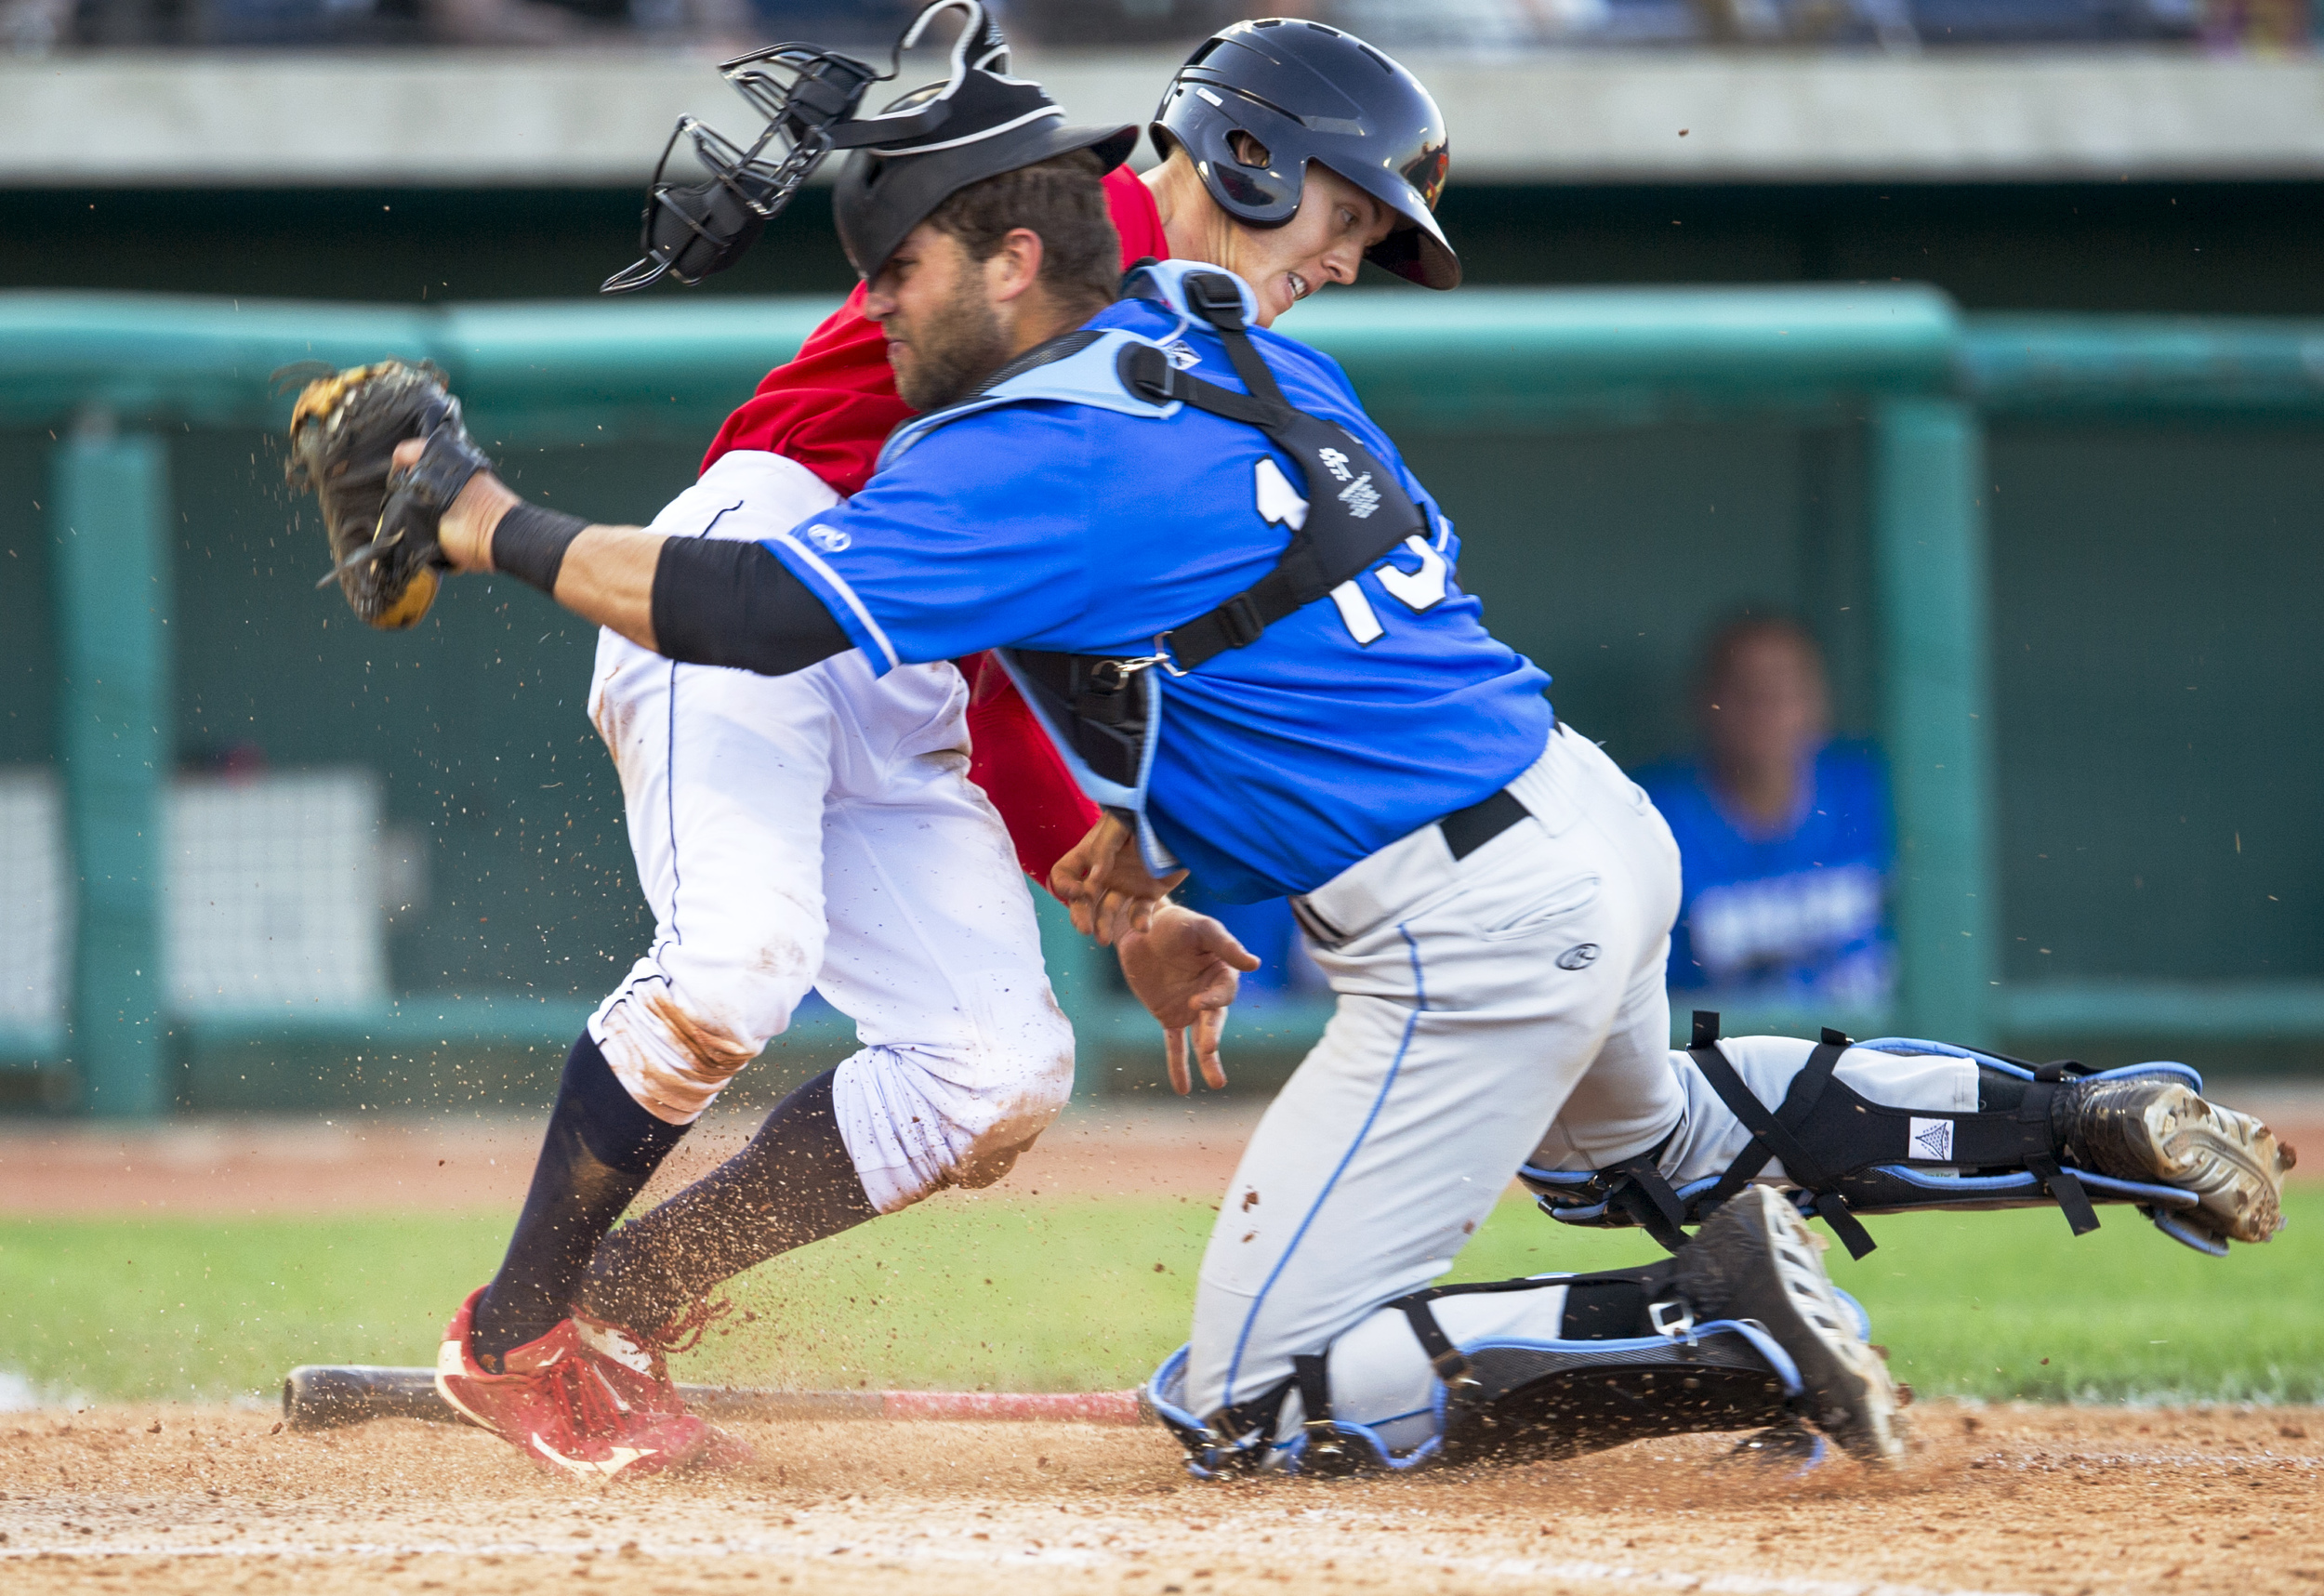 State College Spikes second baseman Danny Martin collides with Hudson Valley Renegades catcher Daniel De La Calle to tie the game in the bottom of the seventh inning during the game at Medlar Field on Sunday, June 19, 2016. State College won the game 7-6.